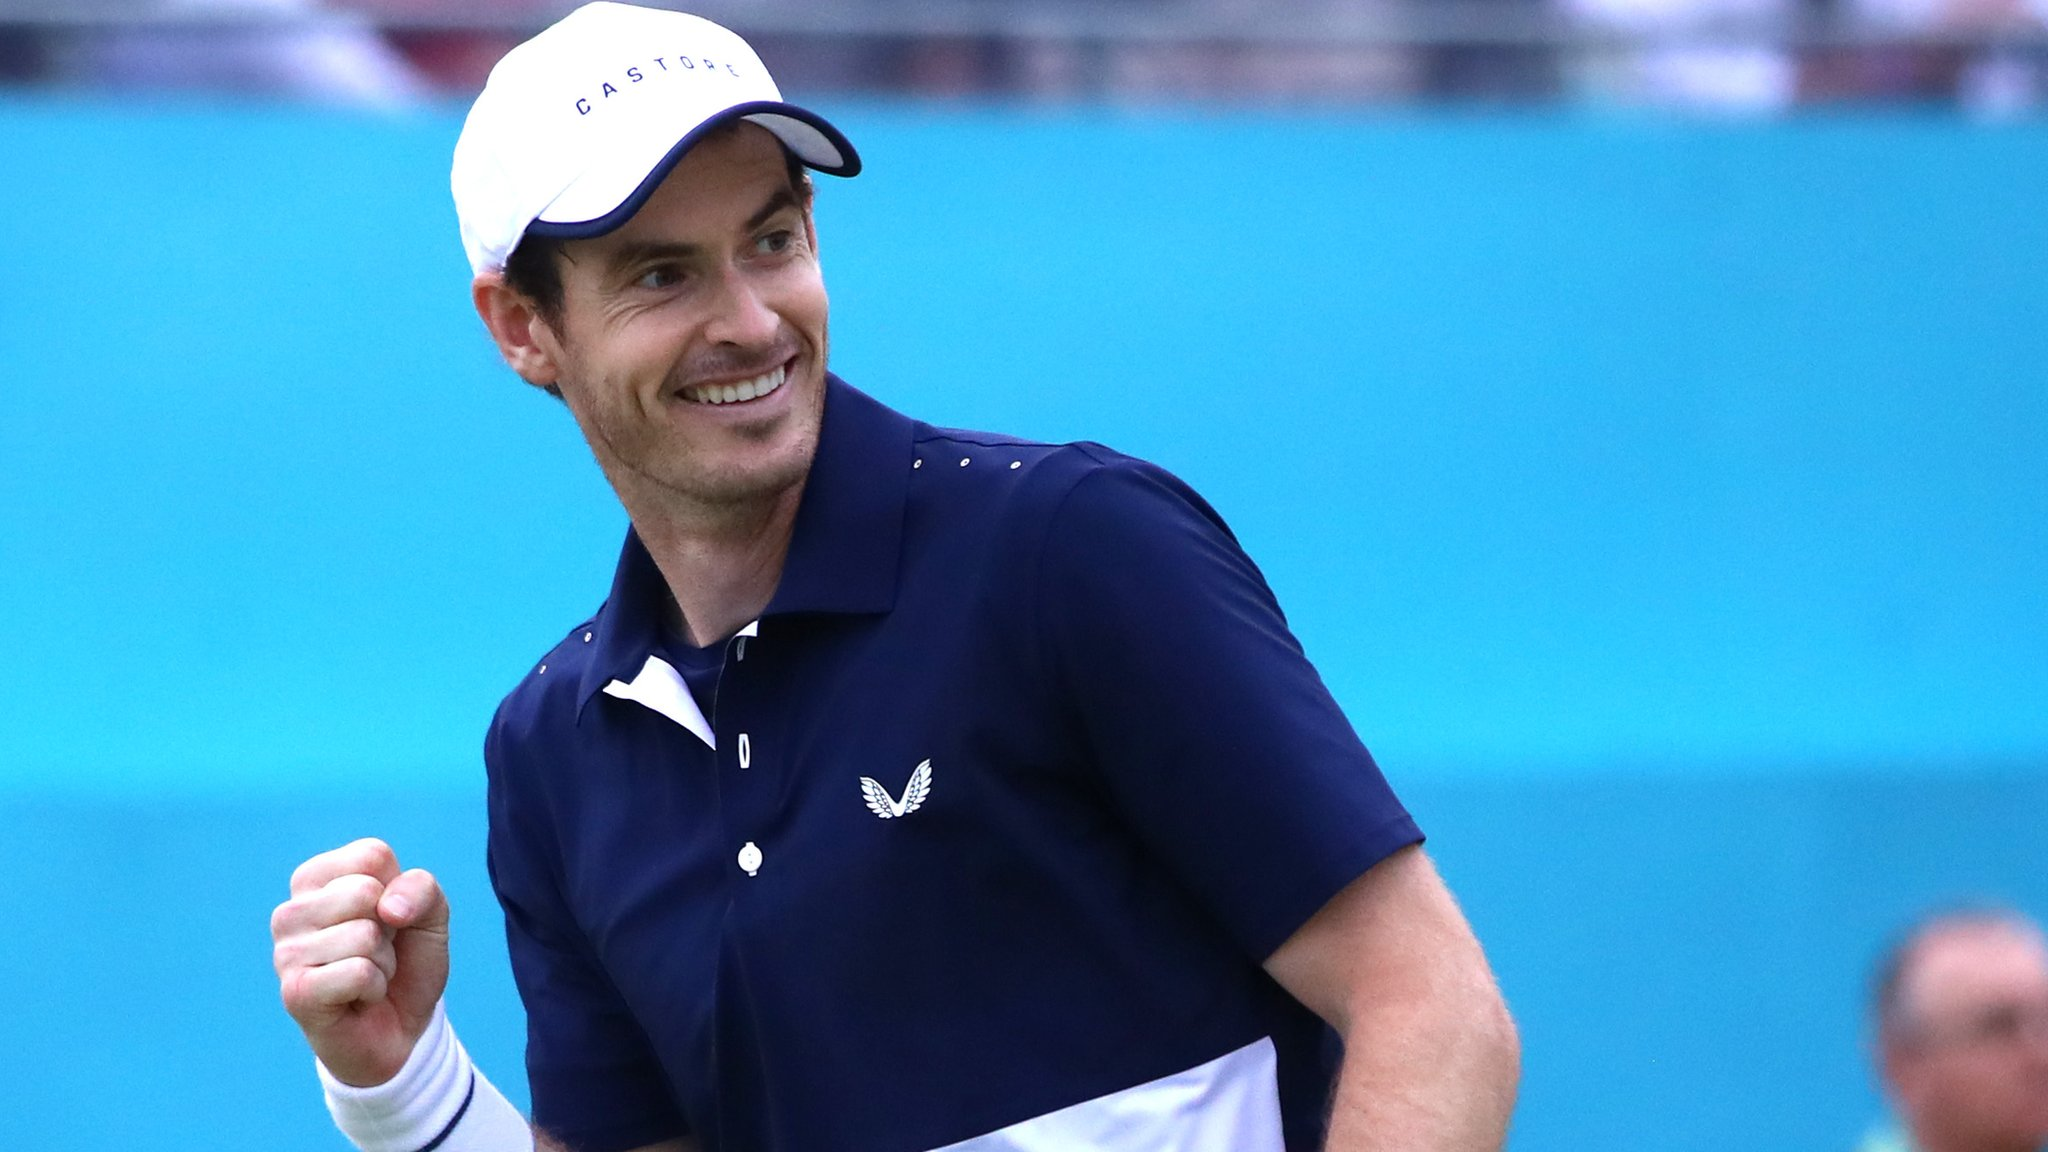 'I've won with a metal hip - it's special' - Murray on Queen's win